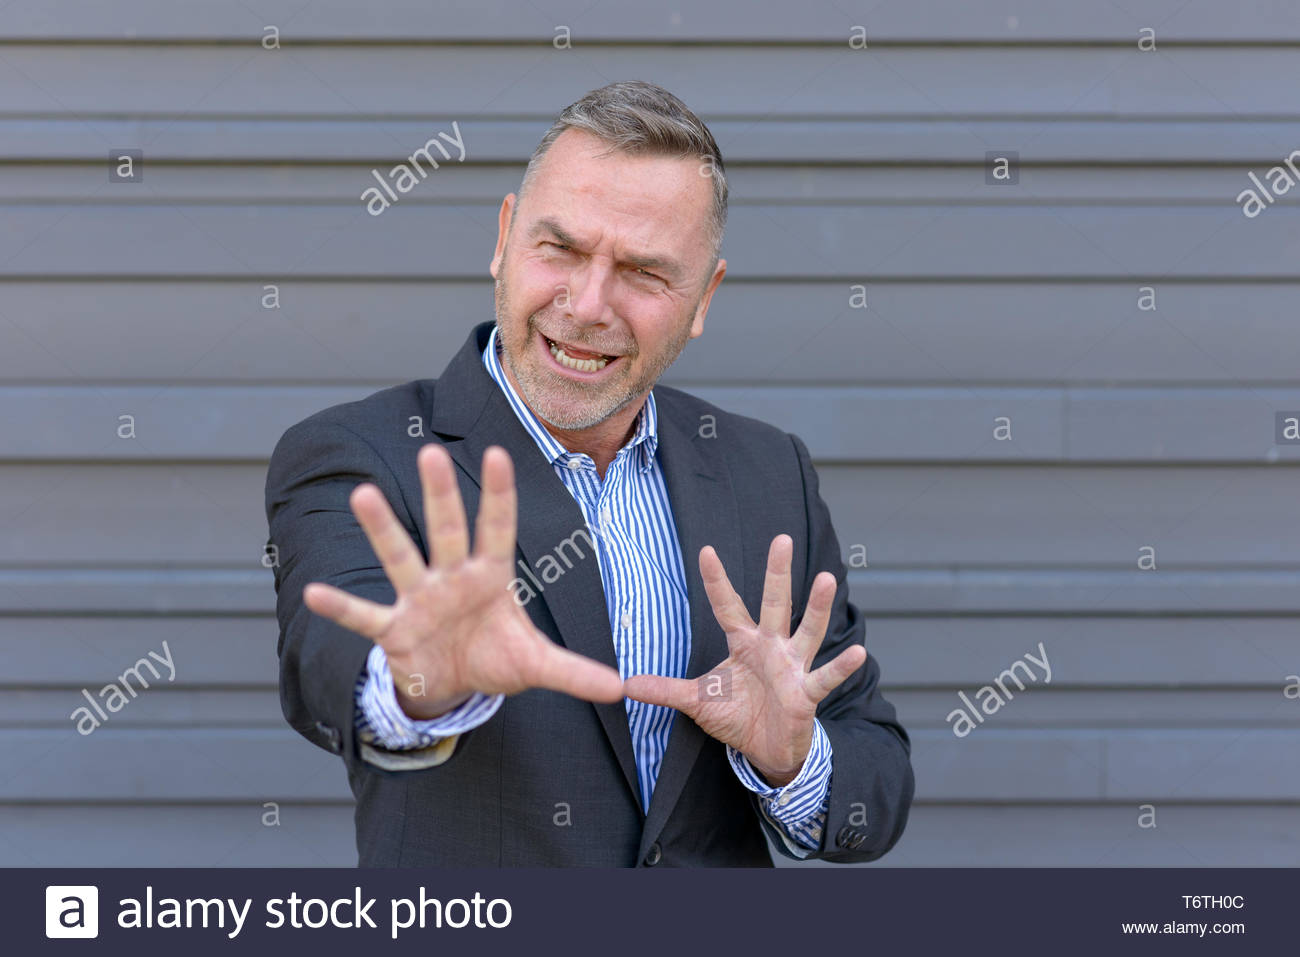 Businessman fending off something with his hands - Stock Image